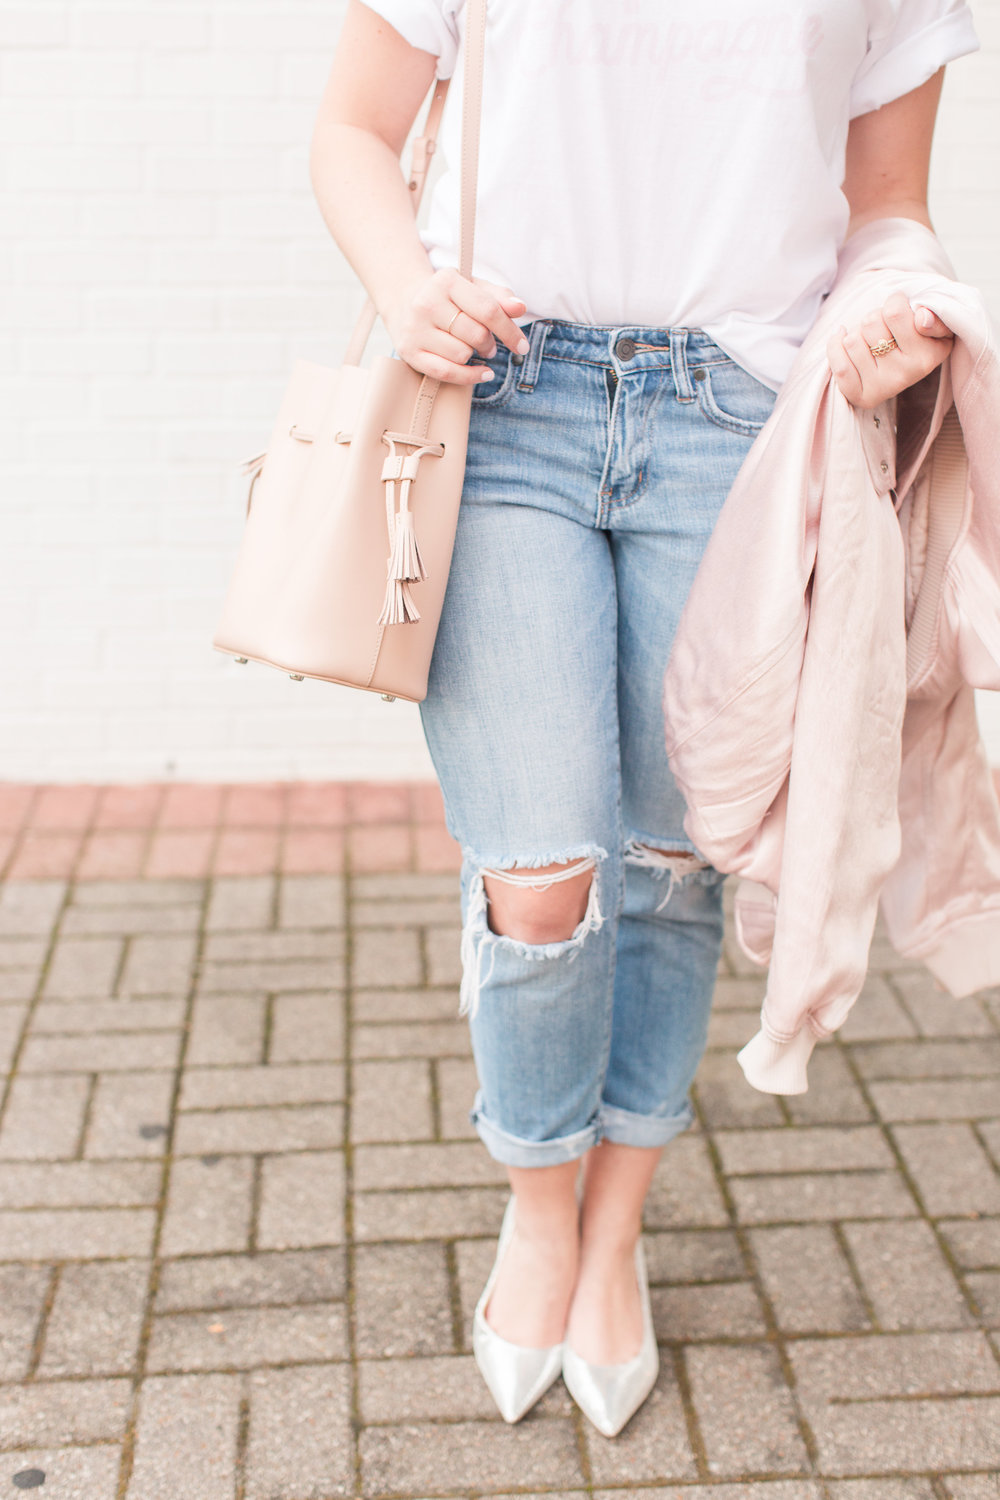 Jeans & Pumps: A Perfect Pairing // sarahmecke.com